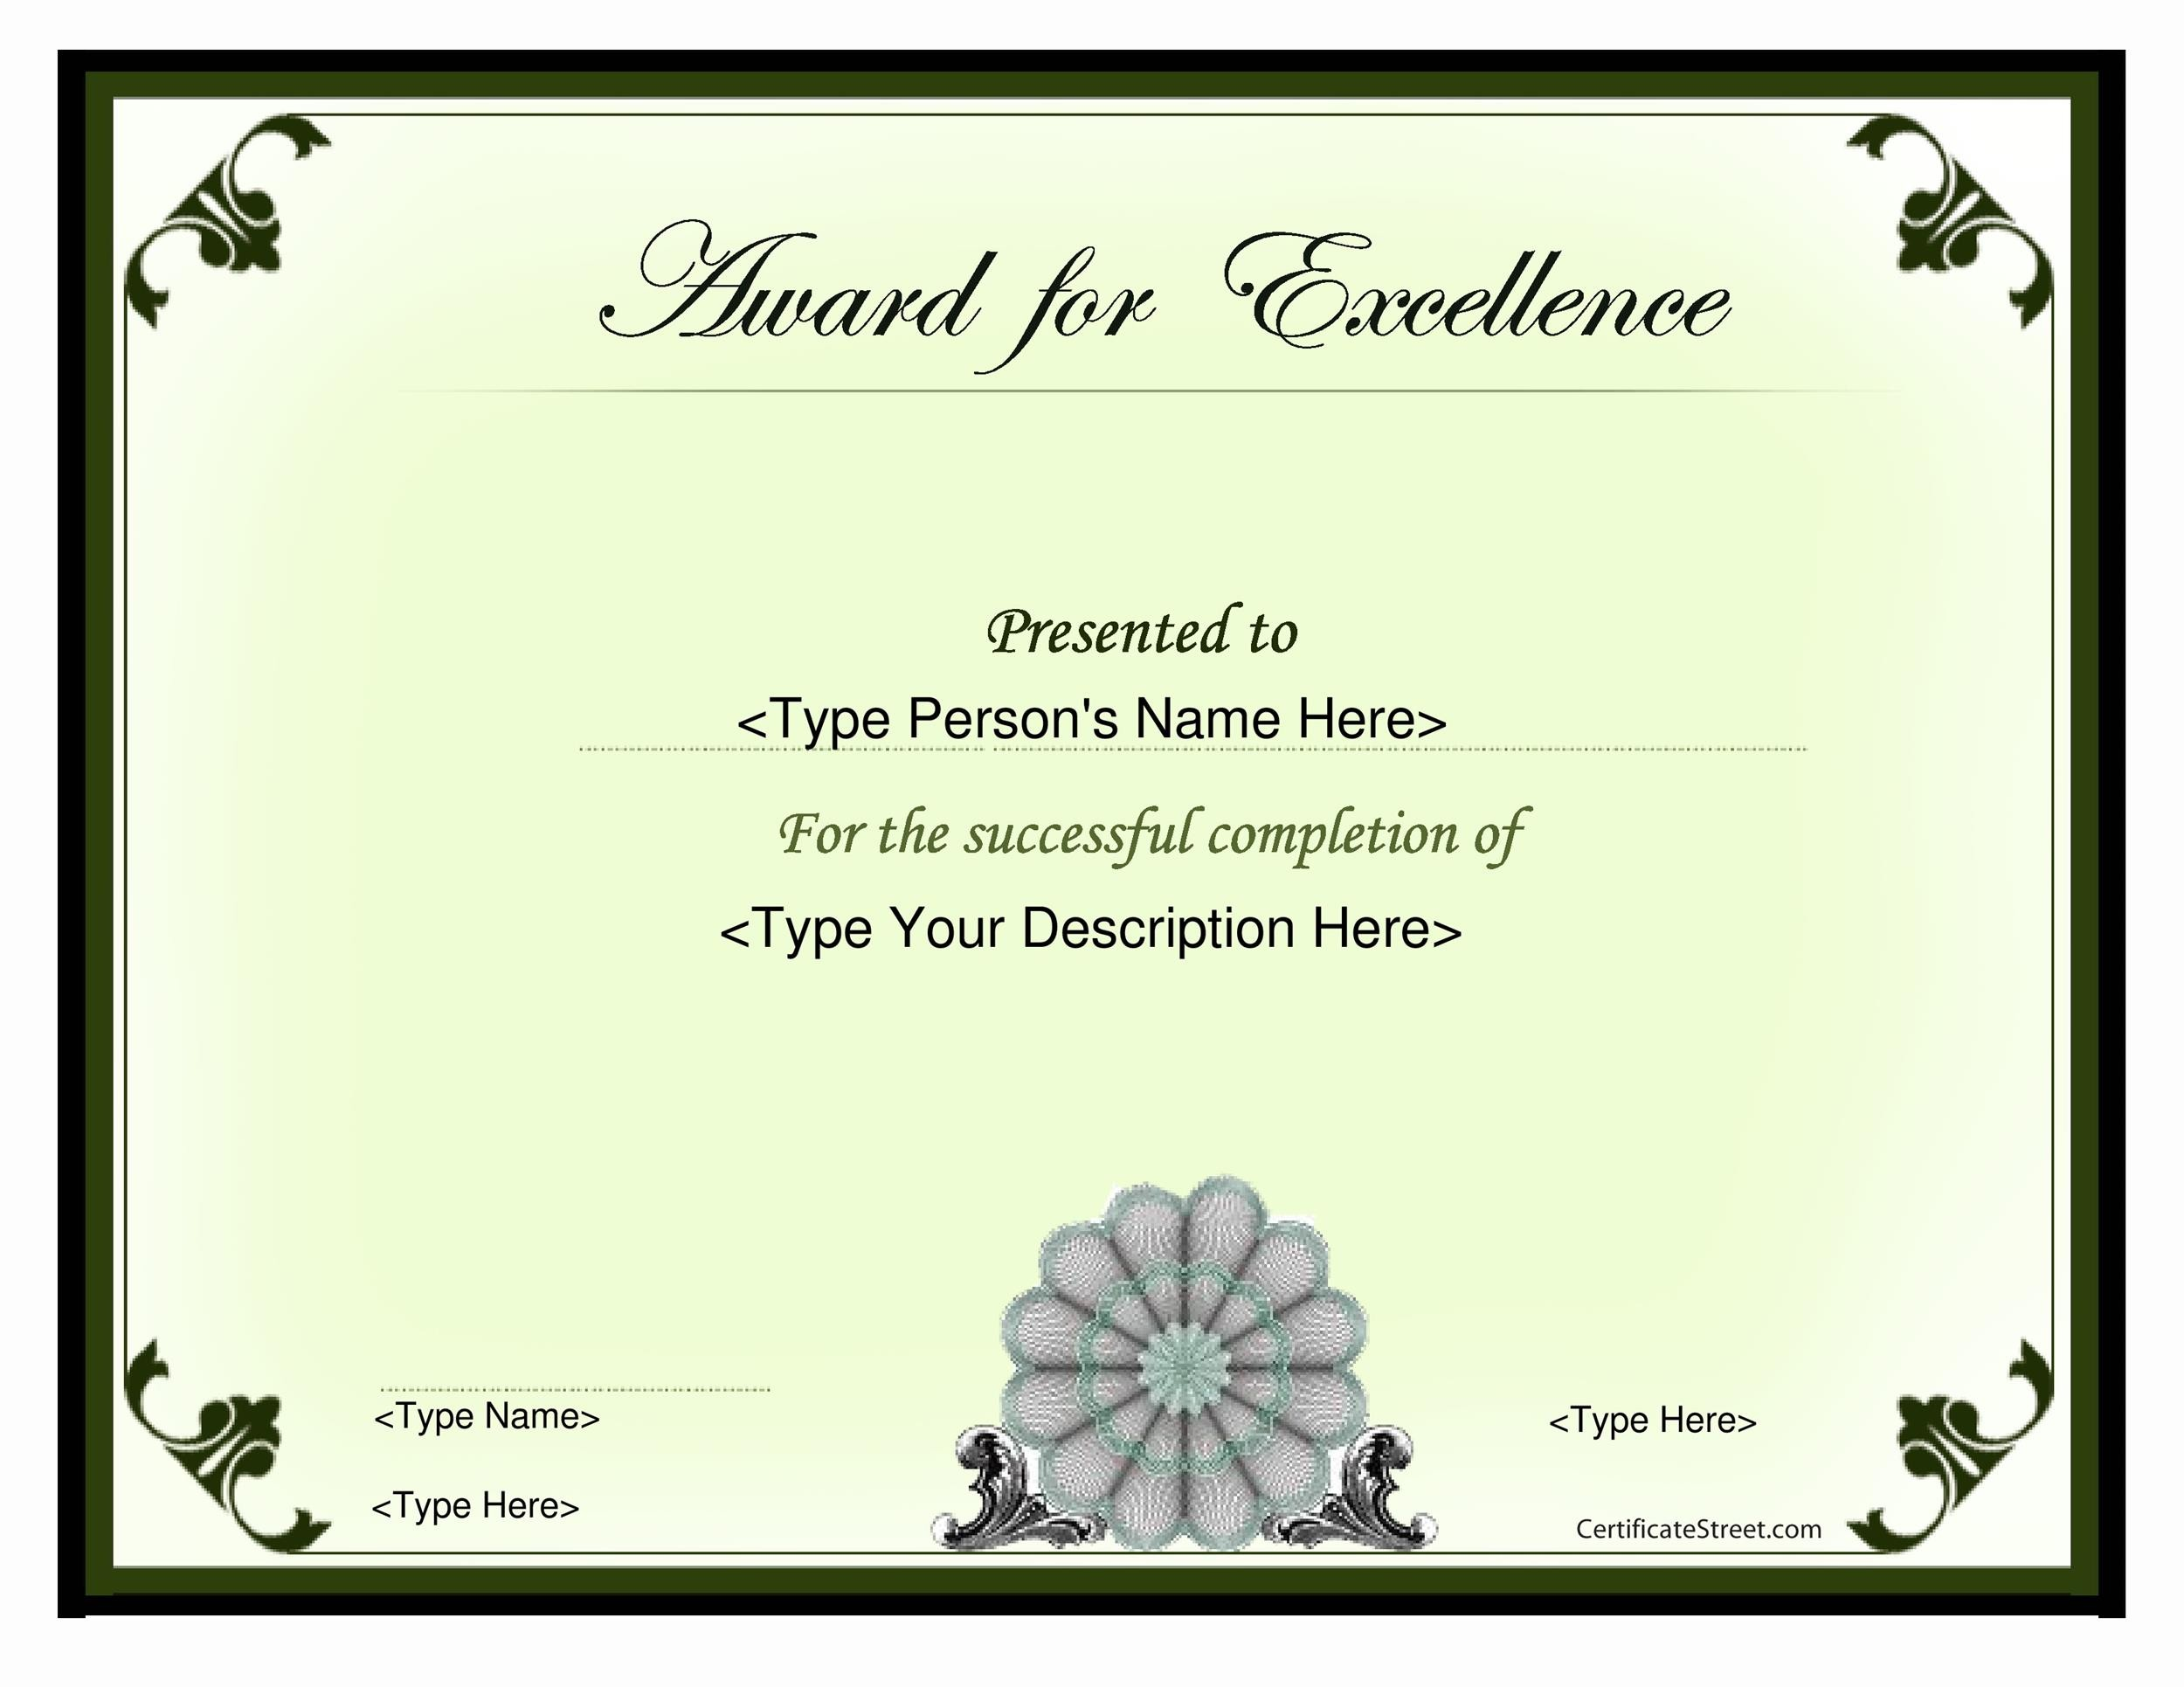 50 Amazing Award Certificate Templates Template Lab – Award of Excellence Certificate Template